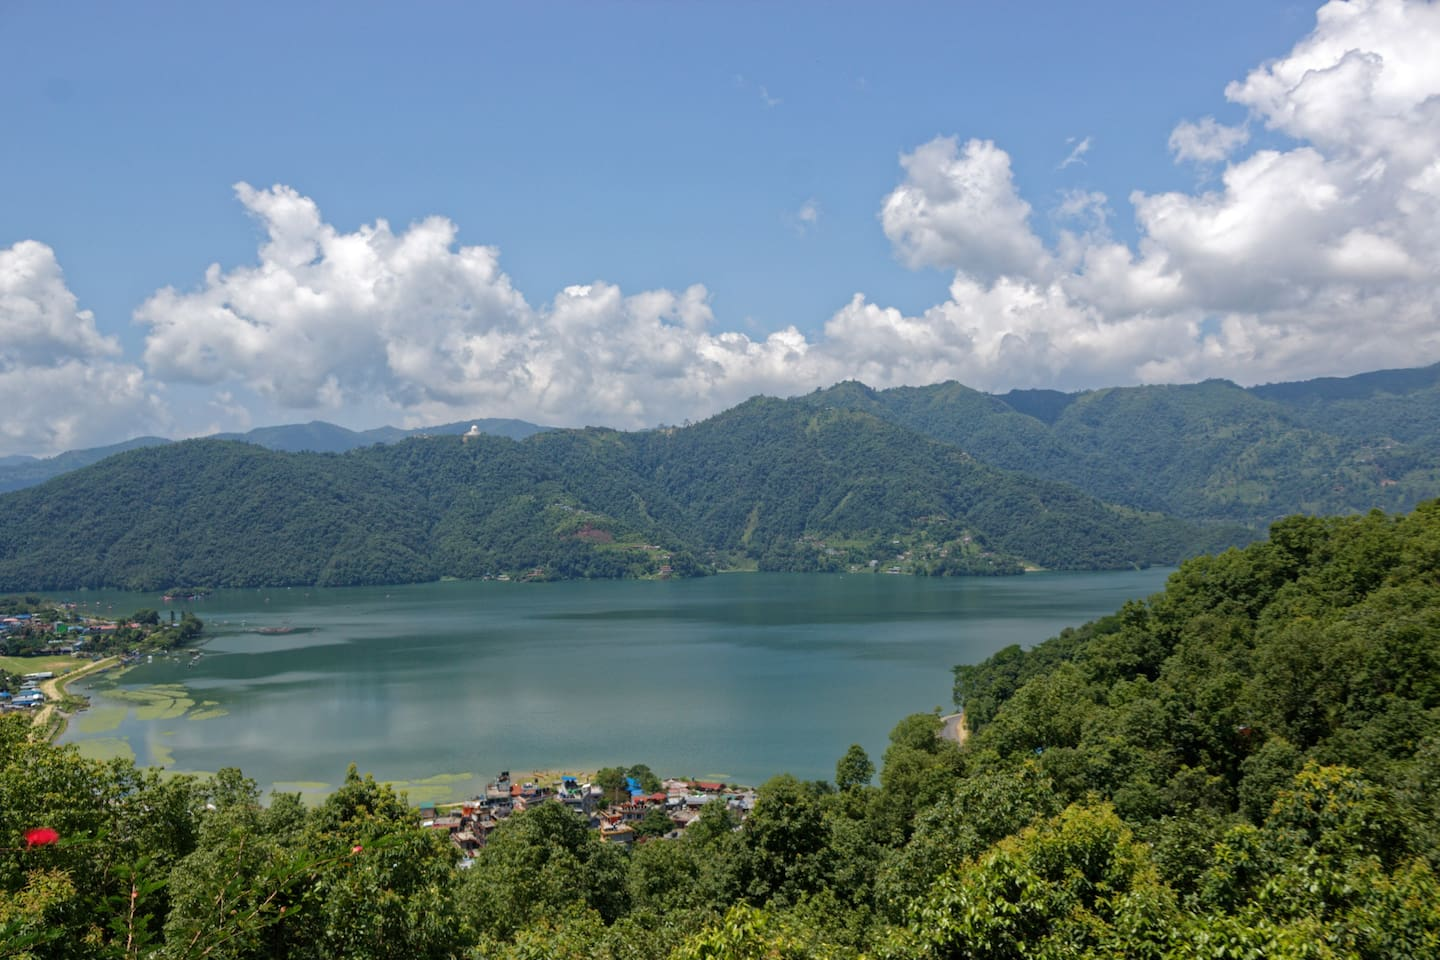 Phewa Lake as seen from the Castle Resort